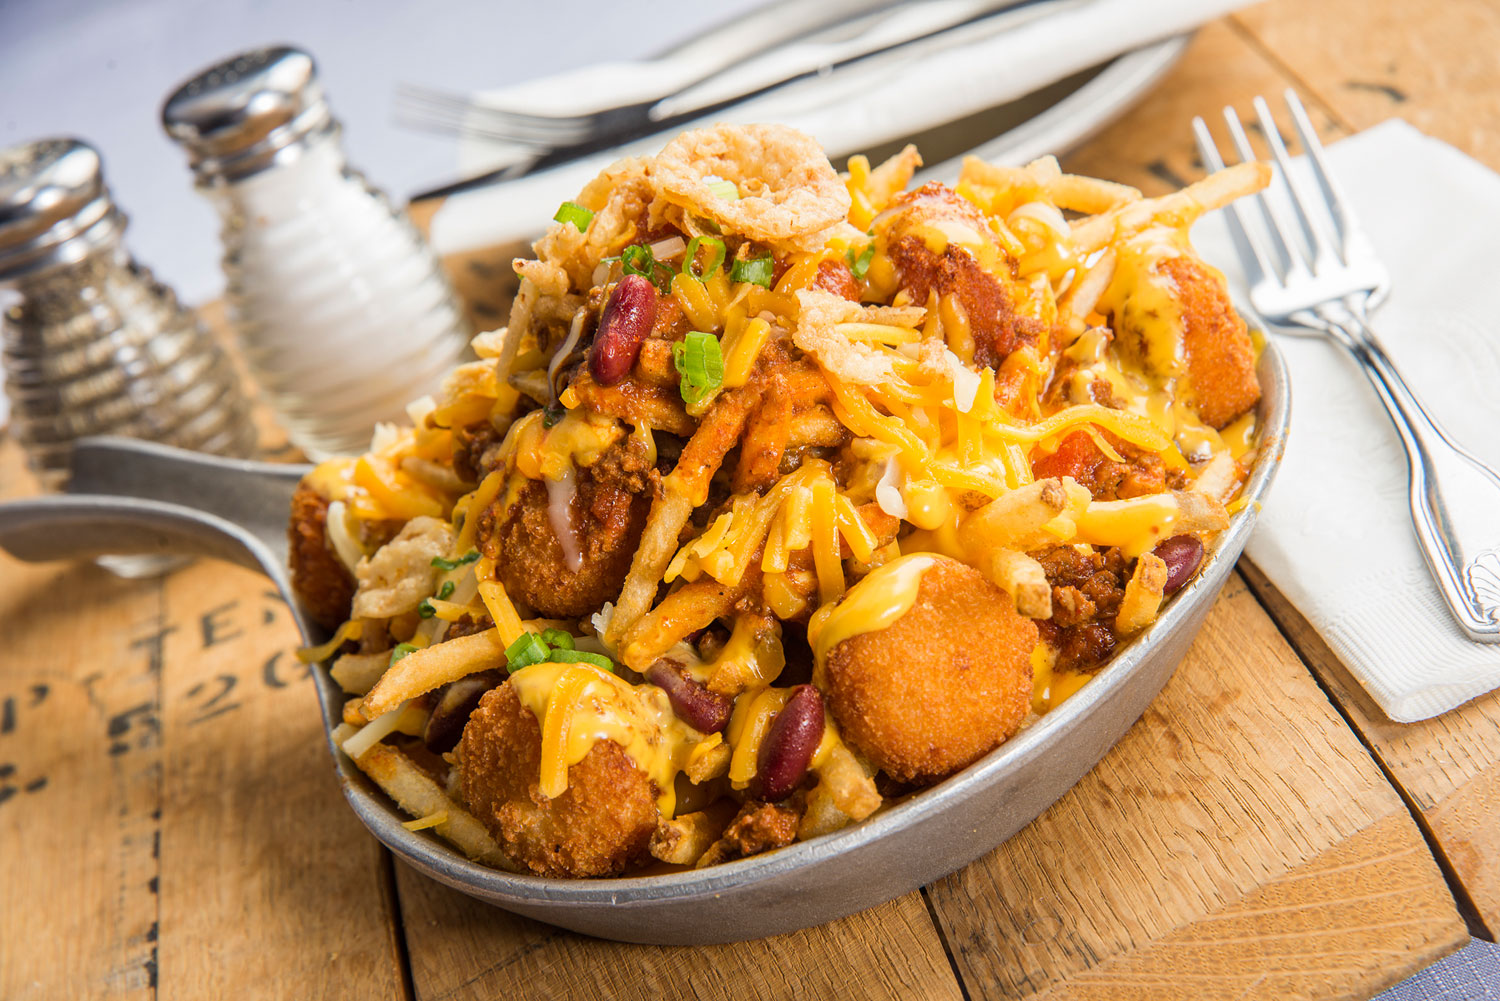 Enjoy sides like cheese fries and tater tots, photo courtesy of Gilley's.